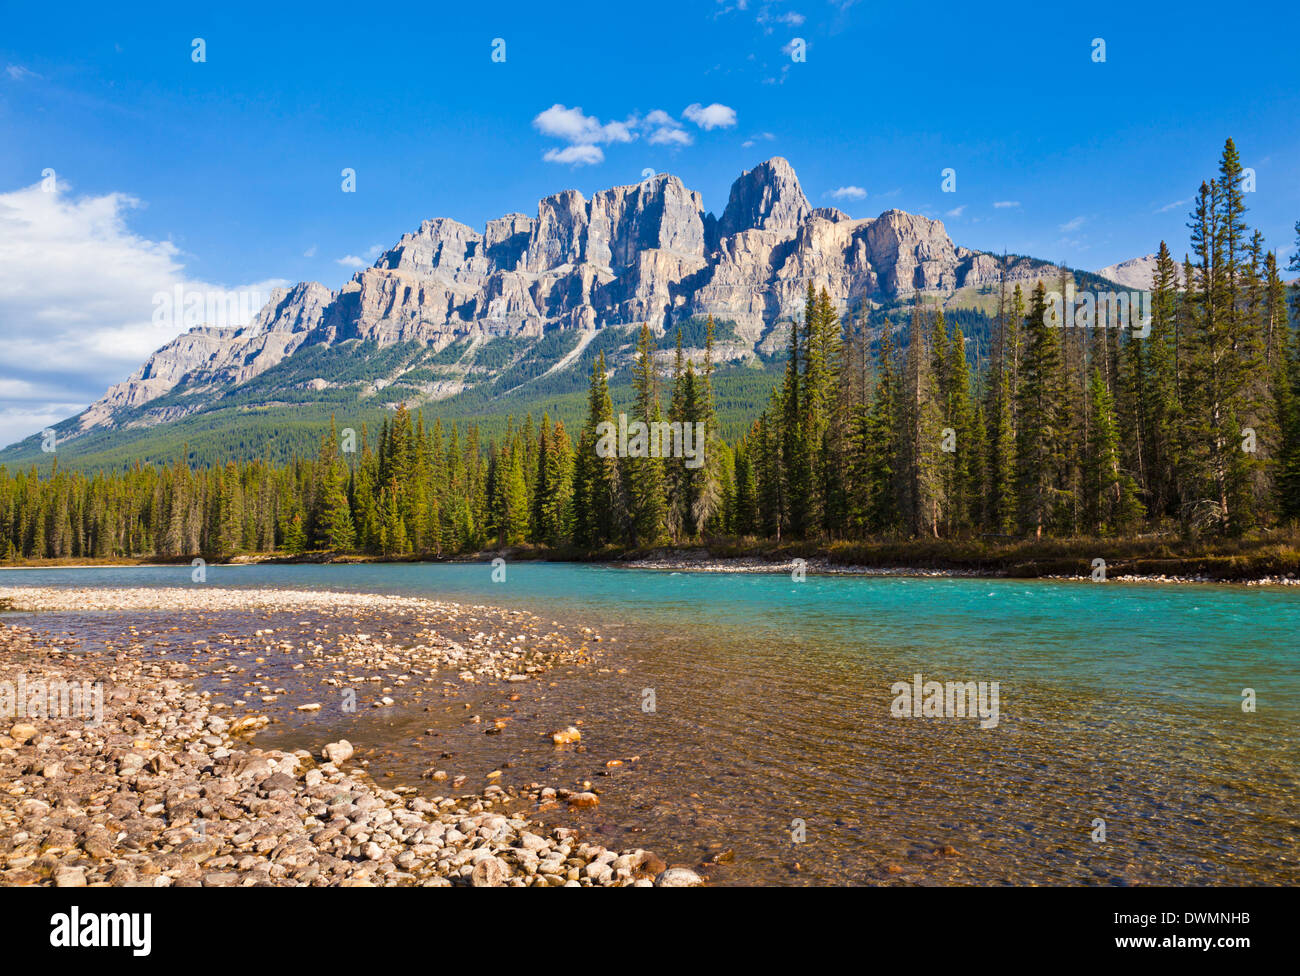 Castle Mountain behind the Bow river at Castle Junction, Banff National Park, UNESCO Site, Alberta, Canadian Rockies, Canada - Stock Image